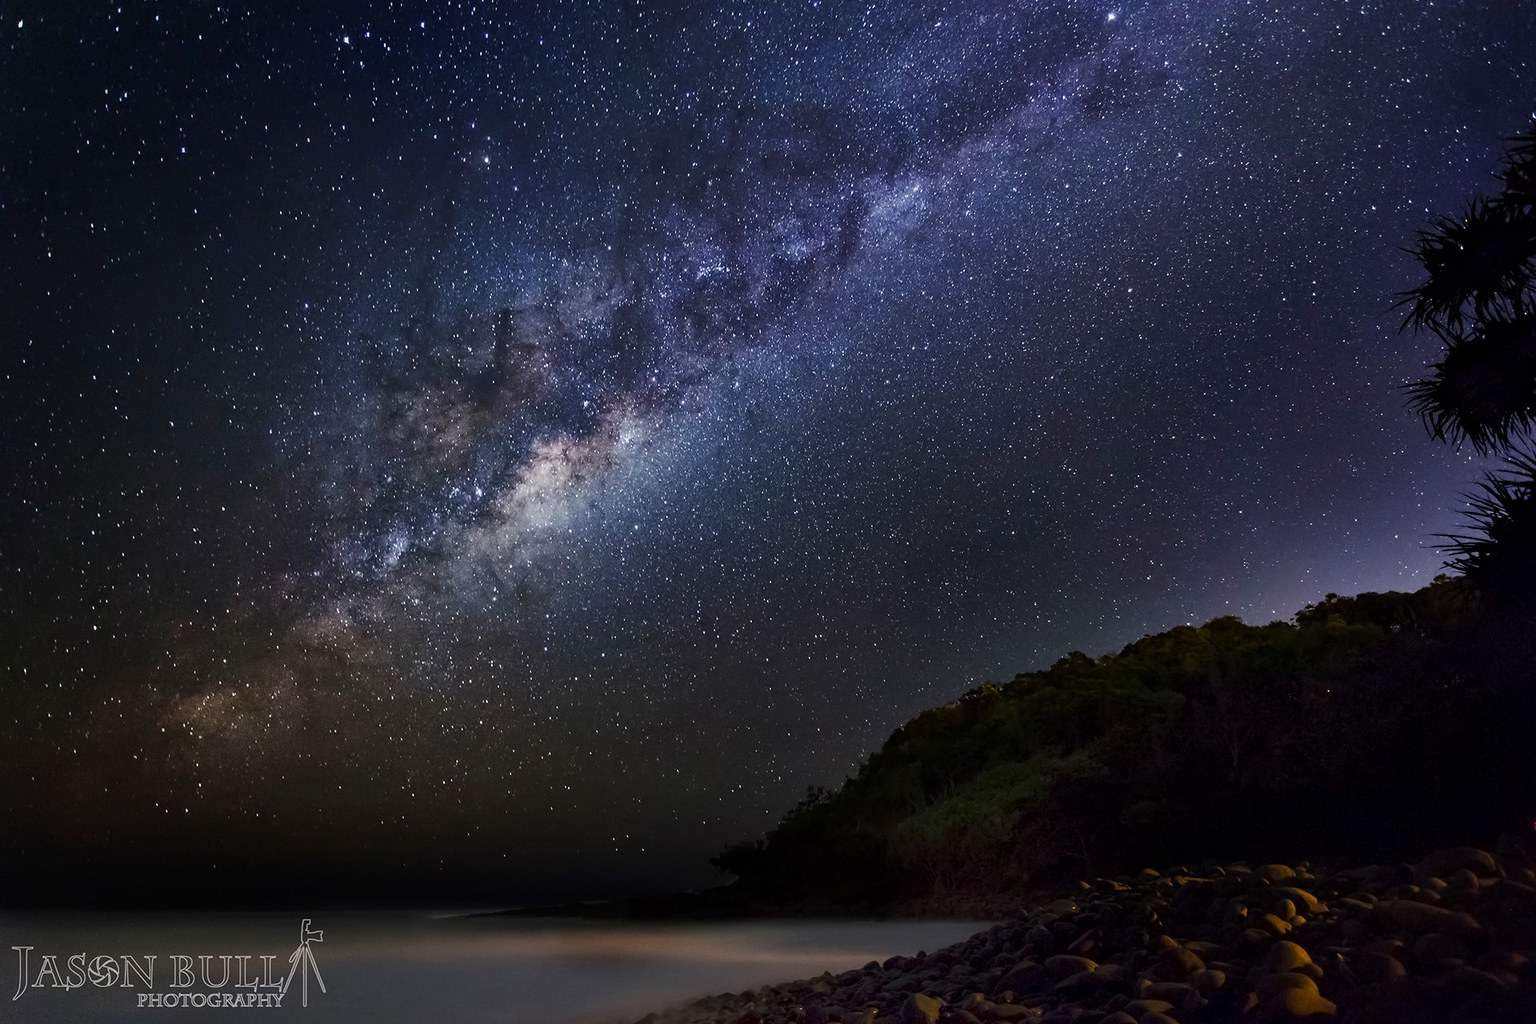 No storms in SE QLD Australia at the moment, but awesome weather for astro shoots. But Id trade this for a storm any day